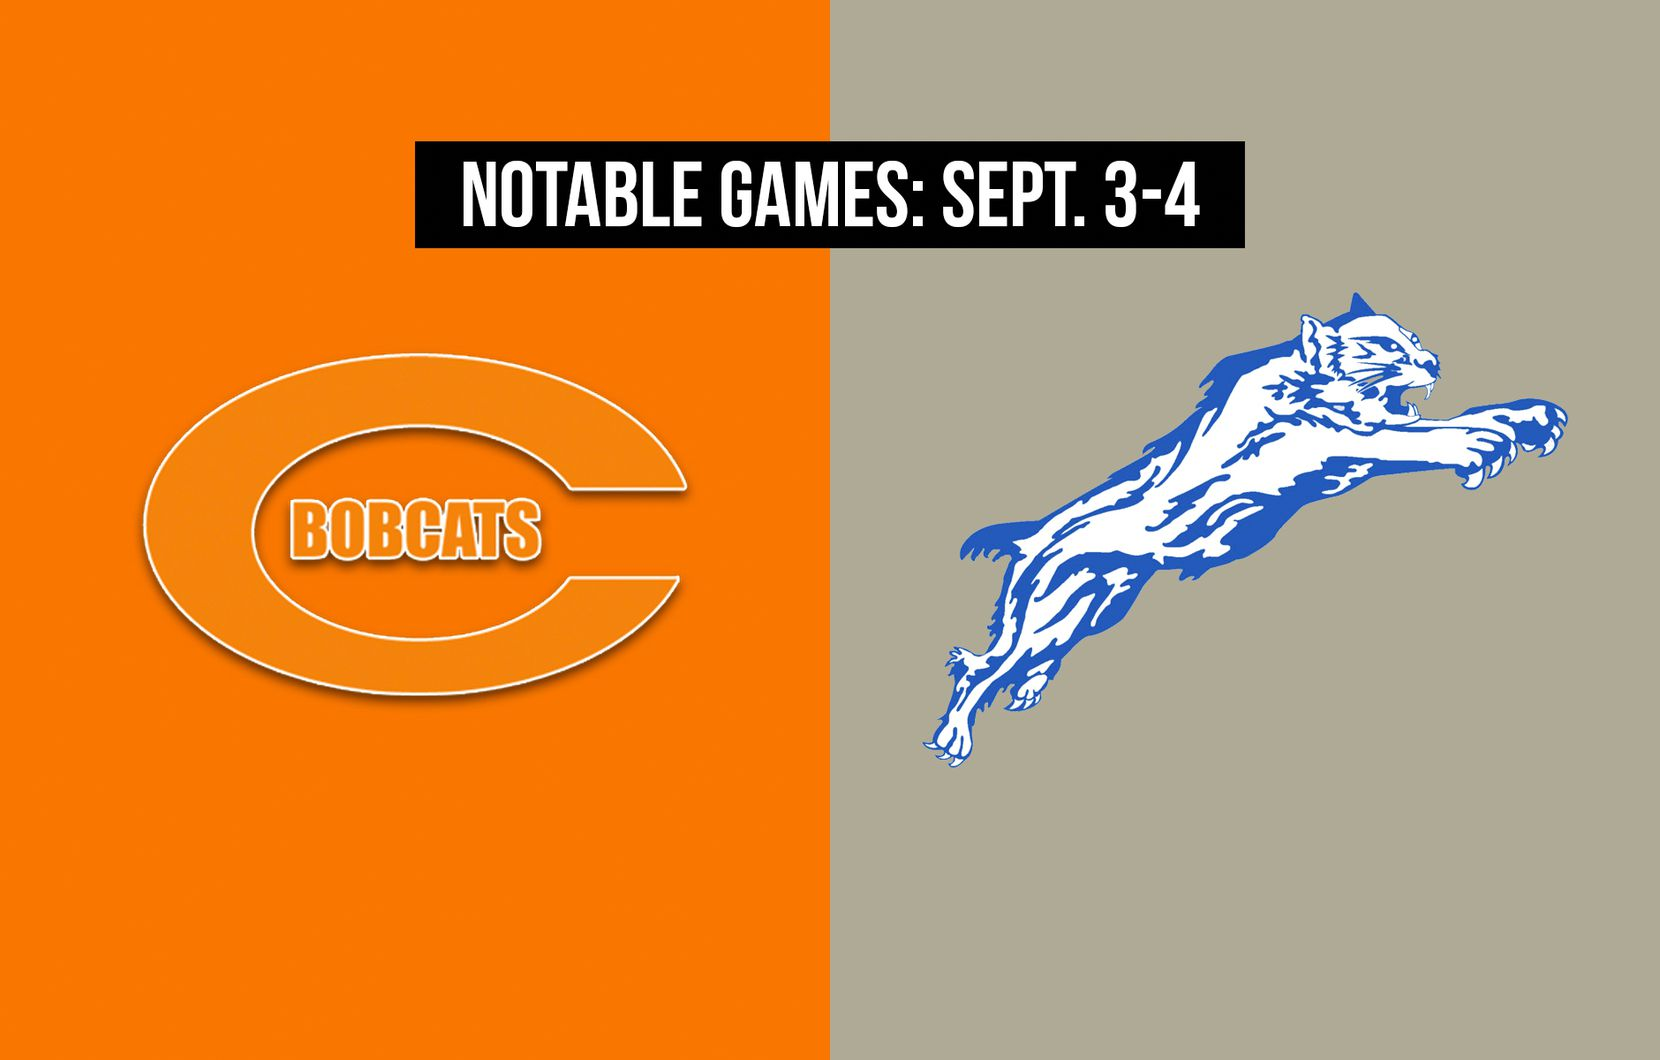 Notable games for the week of Sept. 3-4 of the 2020 season: Celina vs. Paris.